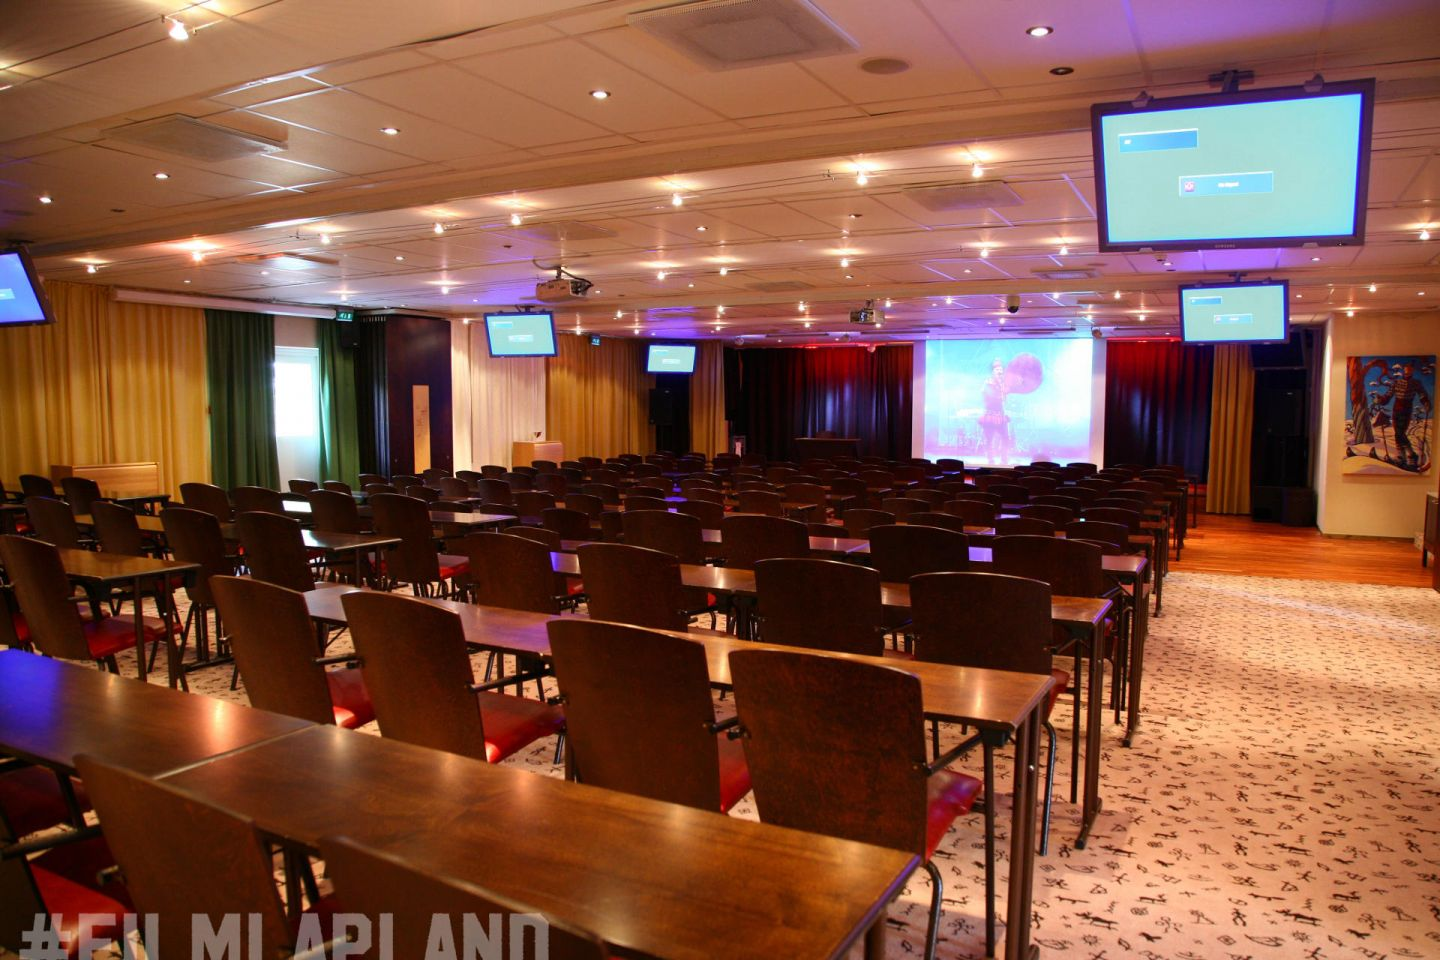 Conference Room in Hotel Hullu Poro in Lapland